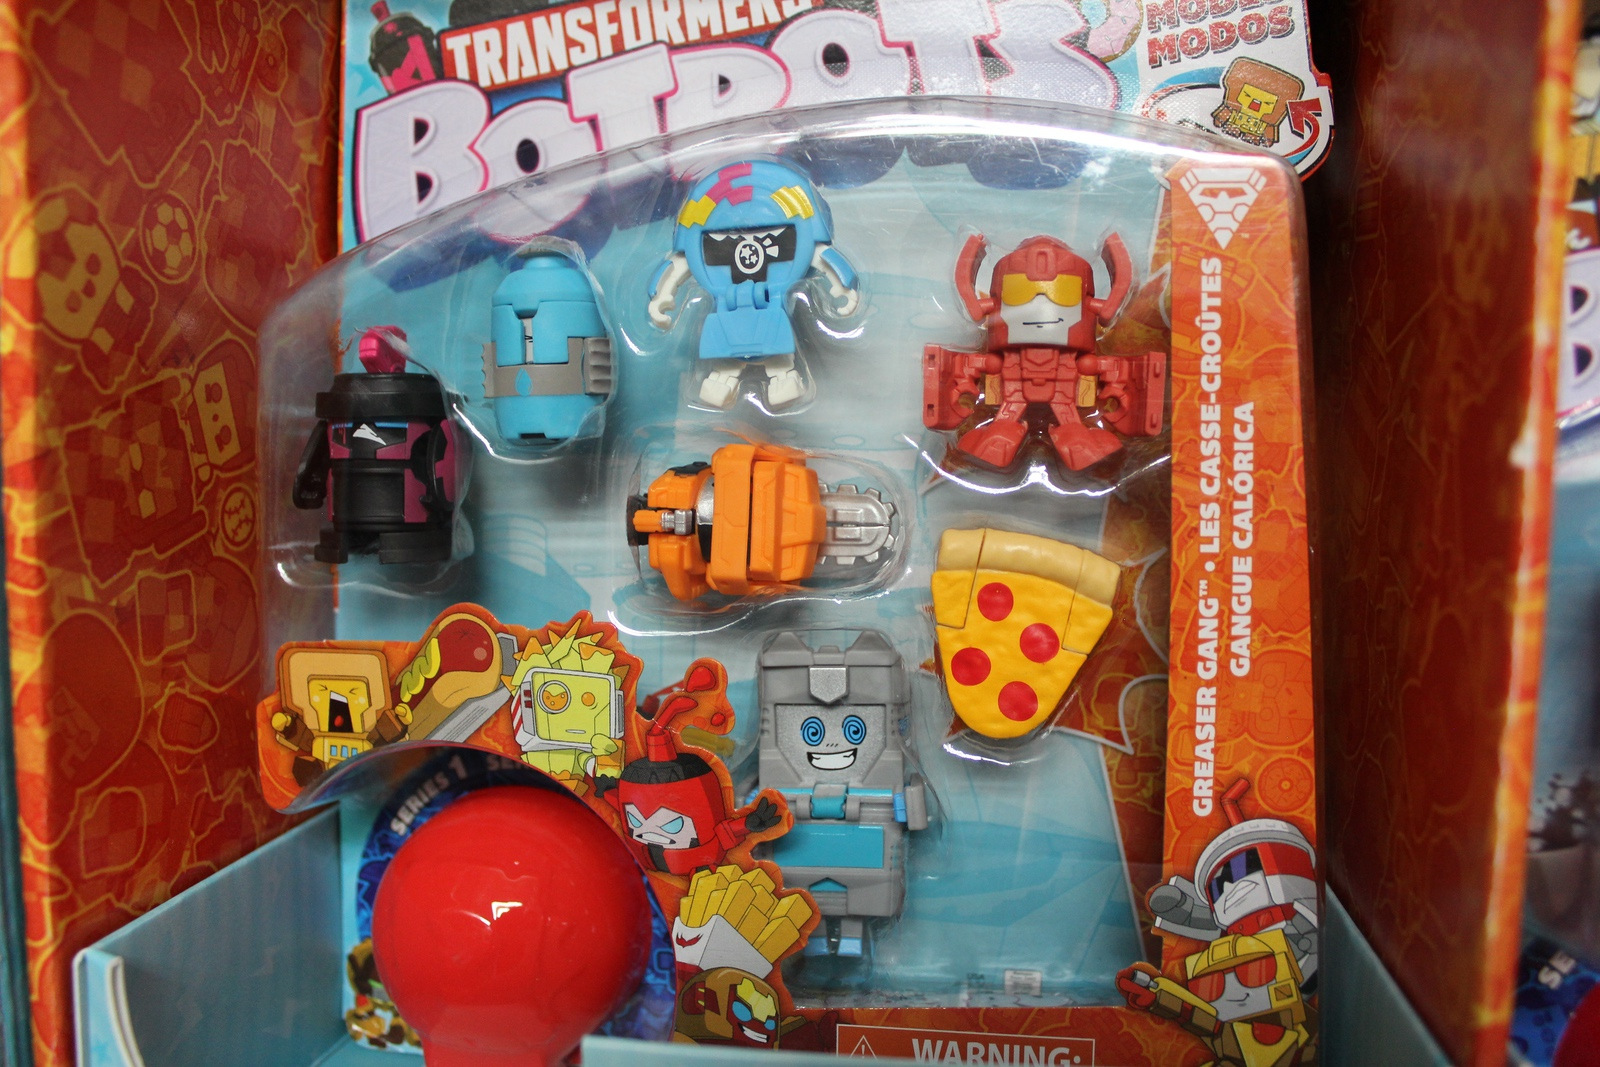 hasbro introduces a whole new transformers line botbots